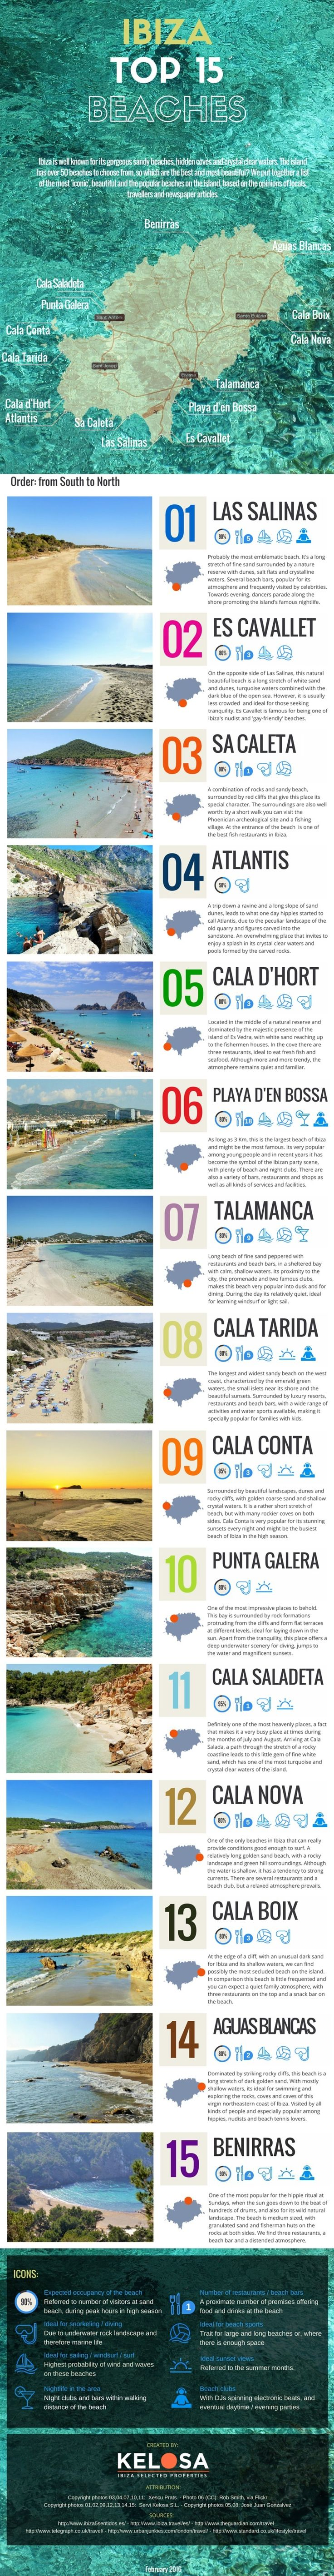 Ibiza's Top 15 Beaches